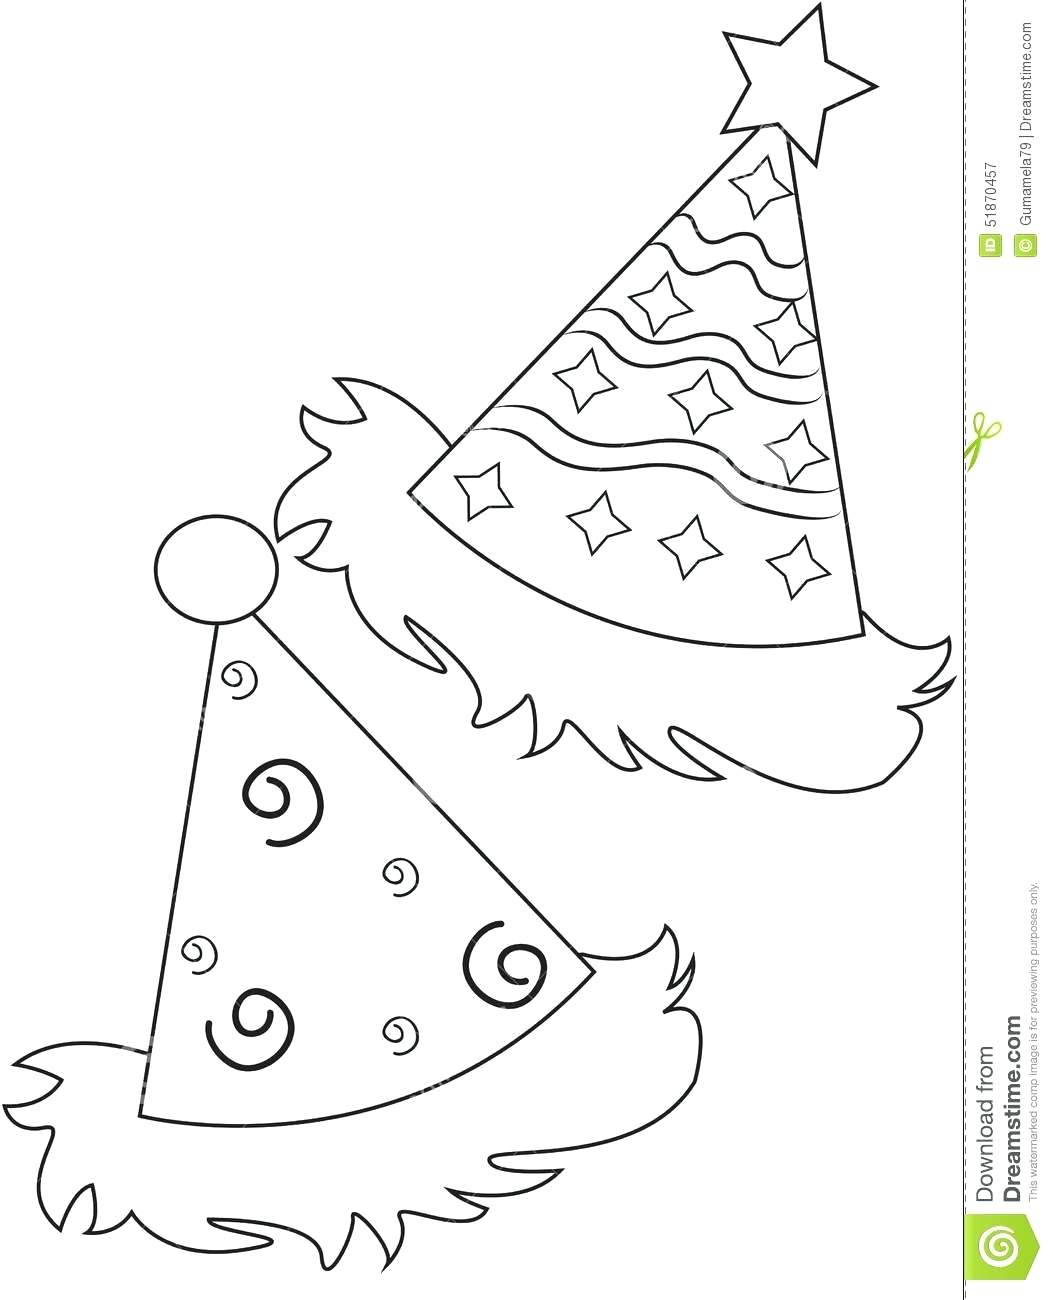 birthday hat coloring page ; birthday-hat-coloring-page-party-pages-cat-in-the-online